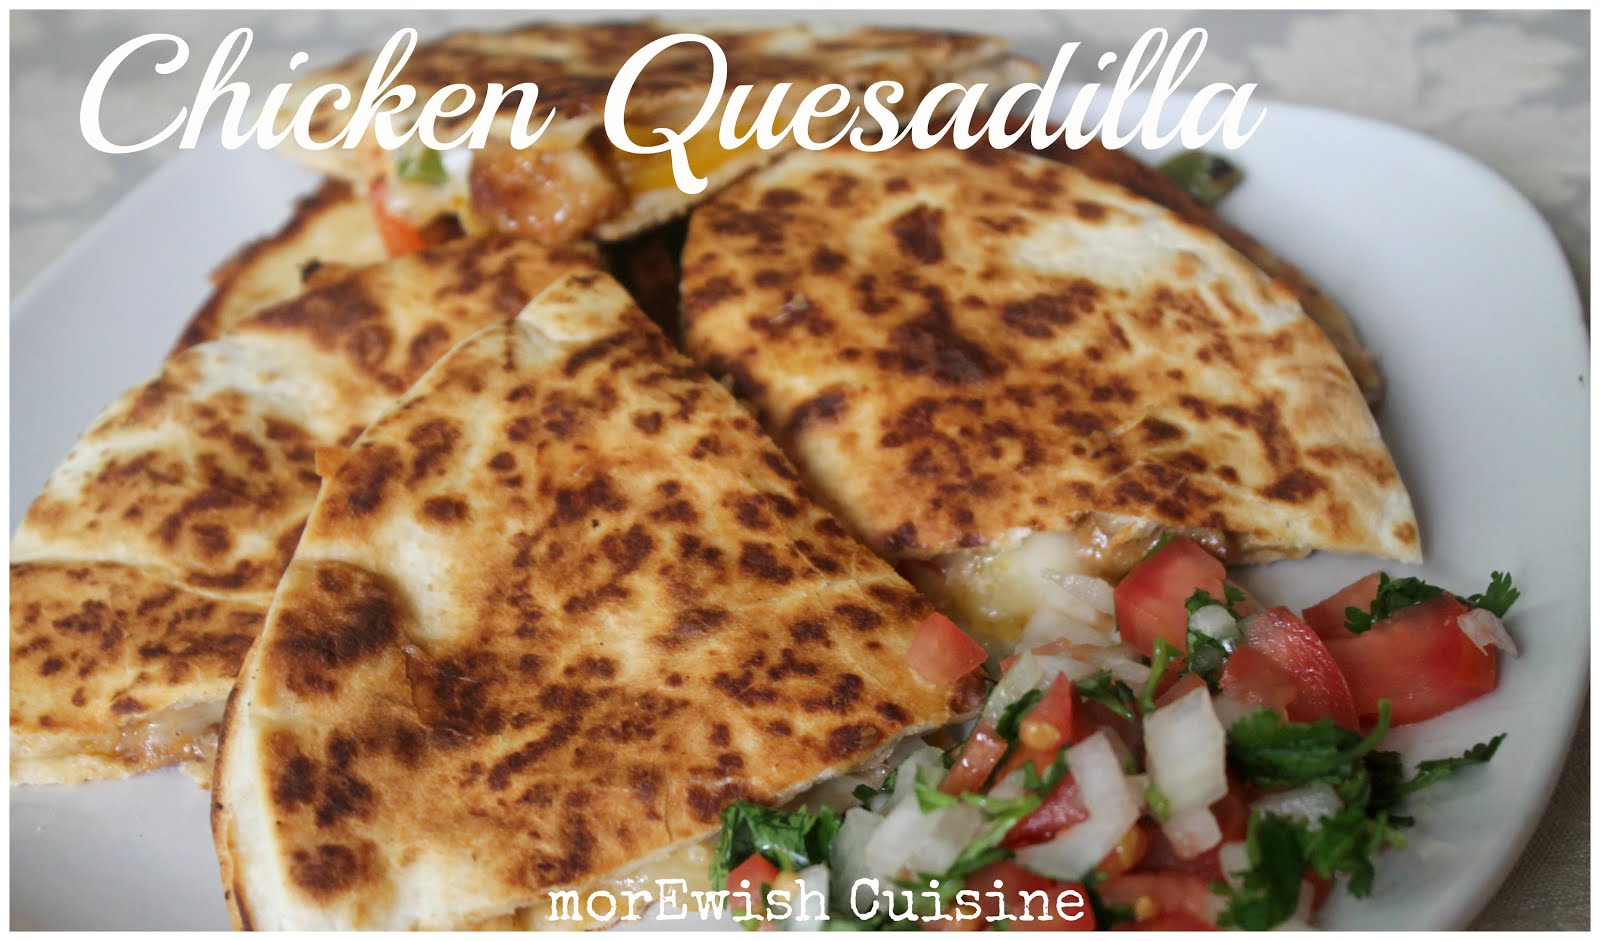 Morewish cuisine by mahwish chicken quesadilla with pico for Academy de cuisine